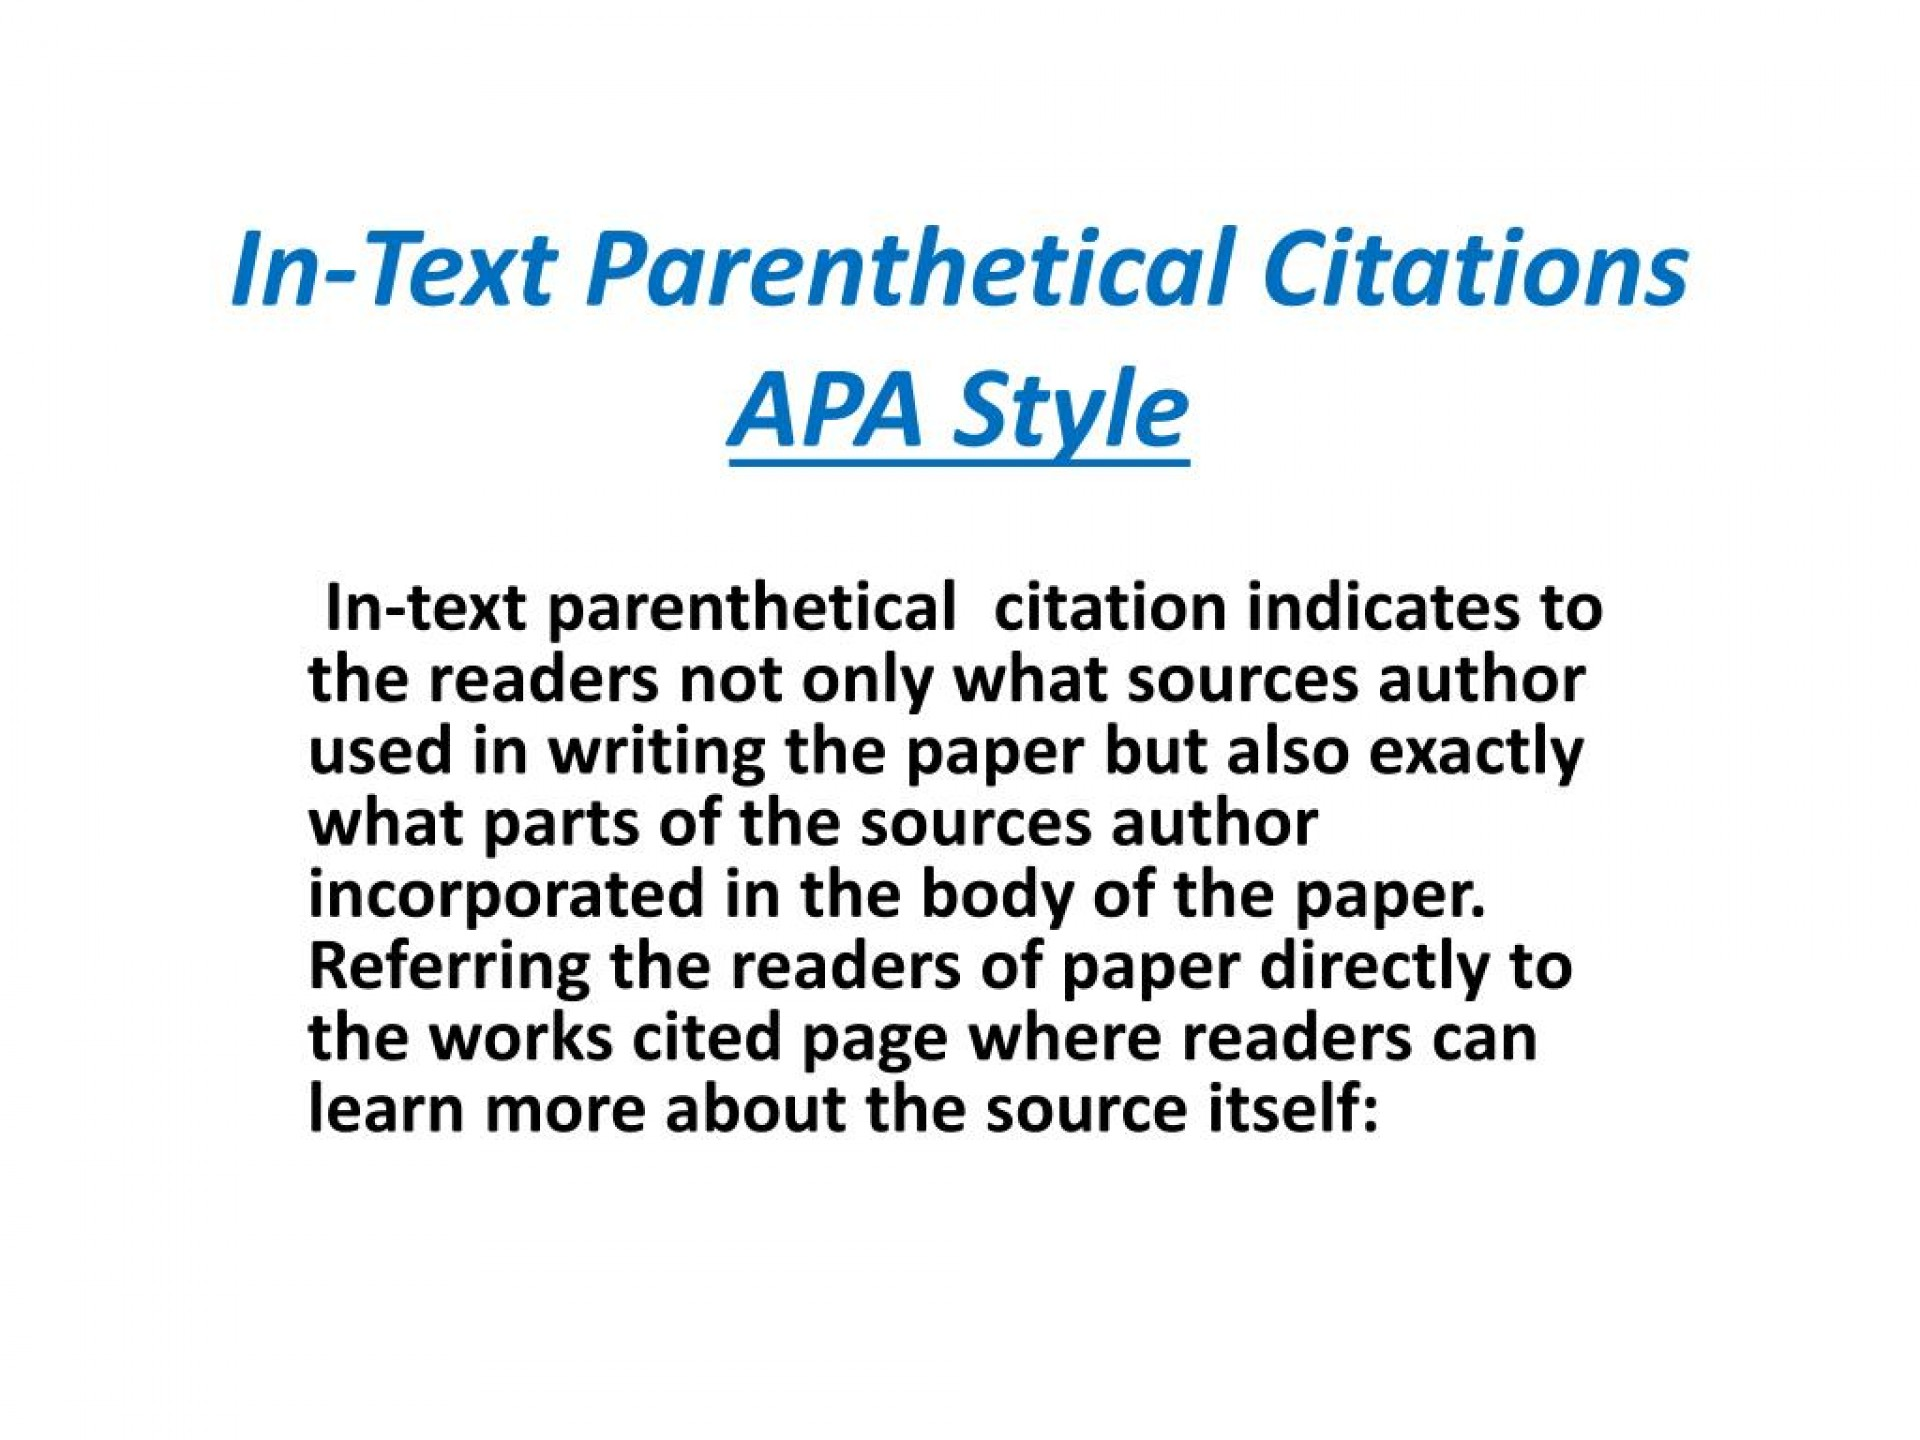 015 In Text Parenthetical Citations Apa Style L How To Cite An Essay Stunning A Book Article Quote Sources Format 1920